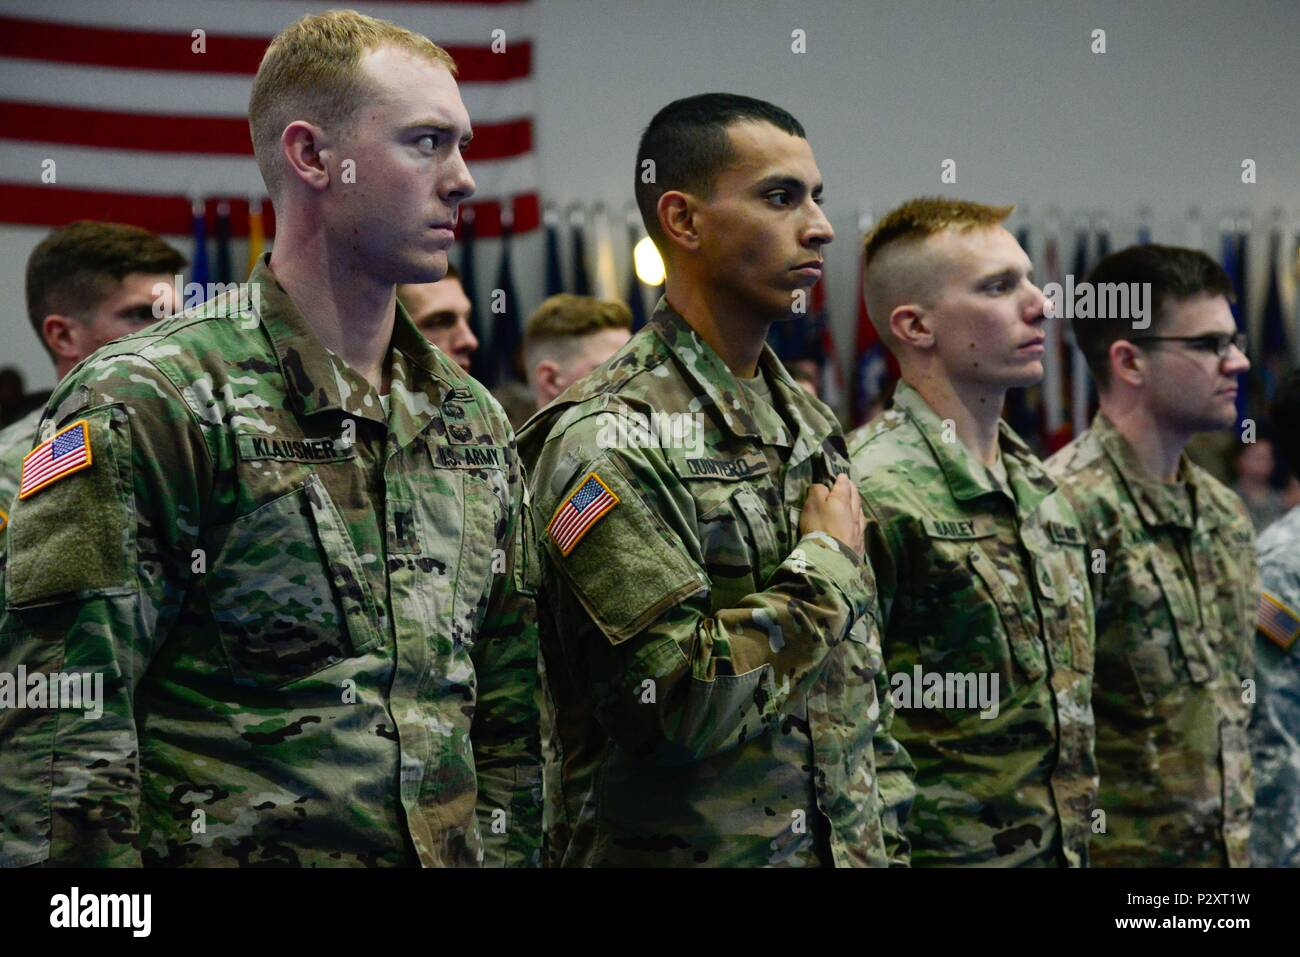 GRAFENWOEHR, Germany – (From left to right) 1st Lt. Ethan Klausner, Sgt. Andres Quintero and Pfc. Shawn Bailey of the 2nd Cavalry Regiment and 2nd Lt. Justin Ganzer of the 21st Theater Sustainment Command stand during the National Anthem during the 2016 European Best Warrior Competition concluding ceremony held at the Grafenwoehr Physical Fitness Center. The intense, grueling annual weeklong competition is the most prestigious competitive event of the region. (U.S. Army Photo by Pfc. Emily Houdershieldt) - Stock Image